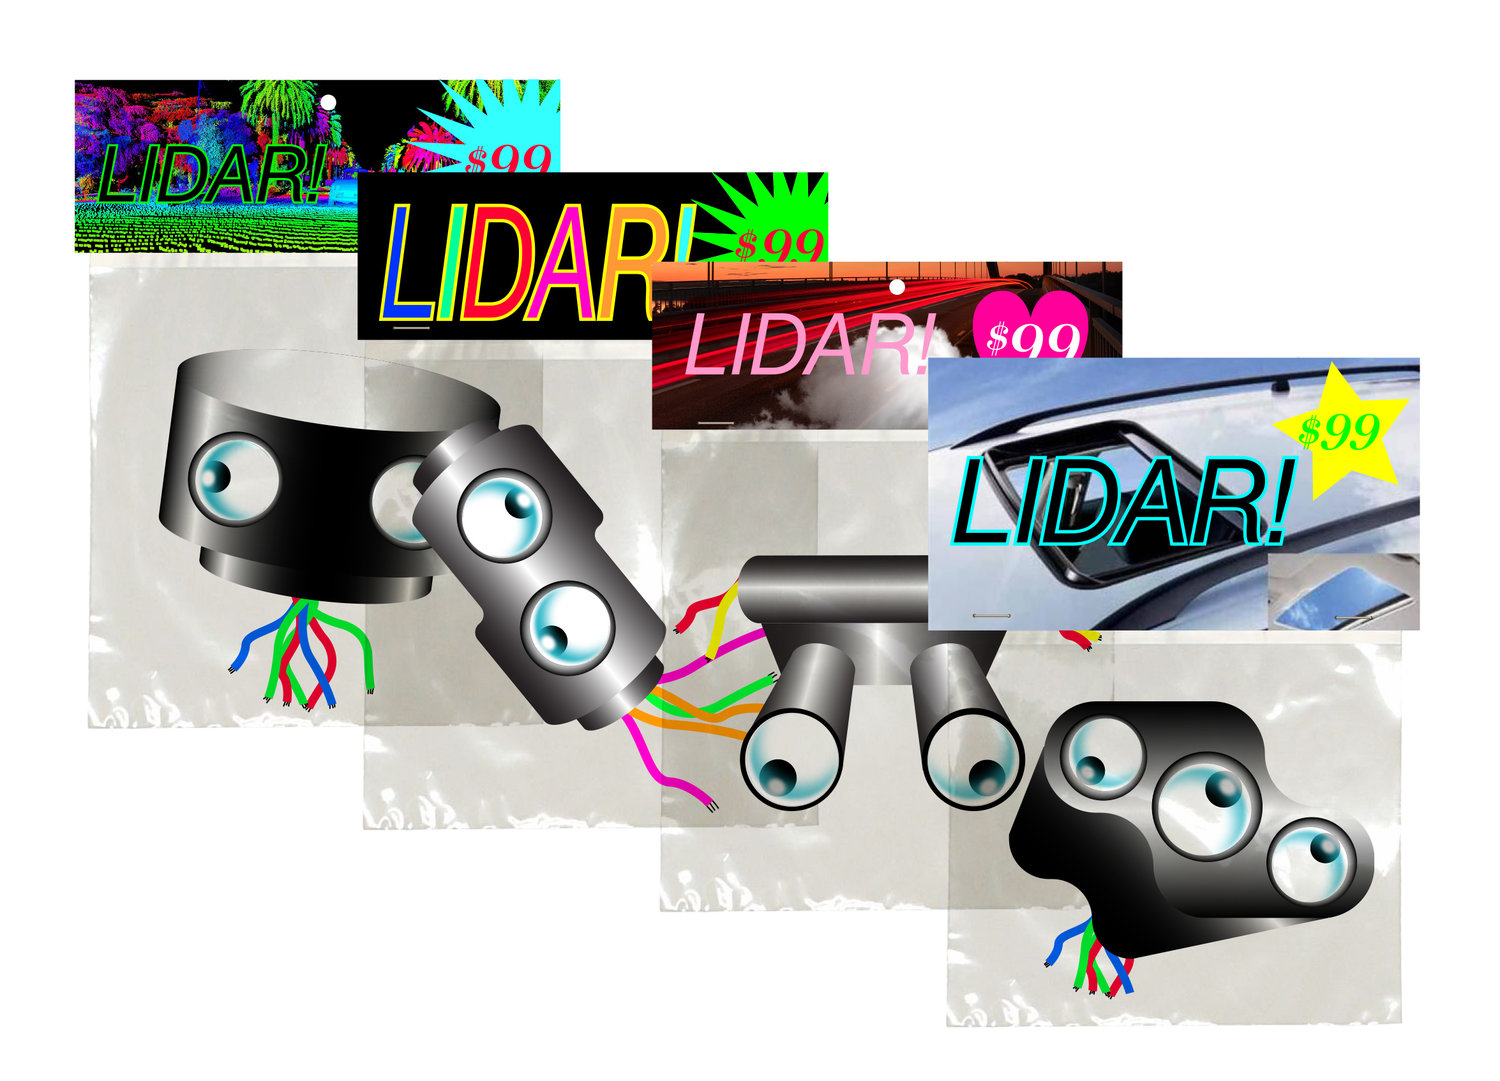 """Illustration for MIT Technology Review """"Low-Quality Lidar Will Keep Self-Driving Cars in the Slow Lane"""